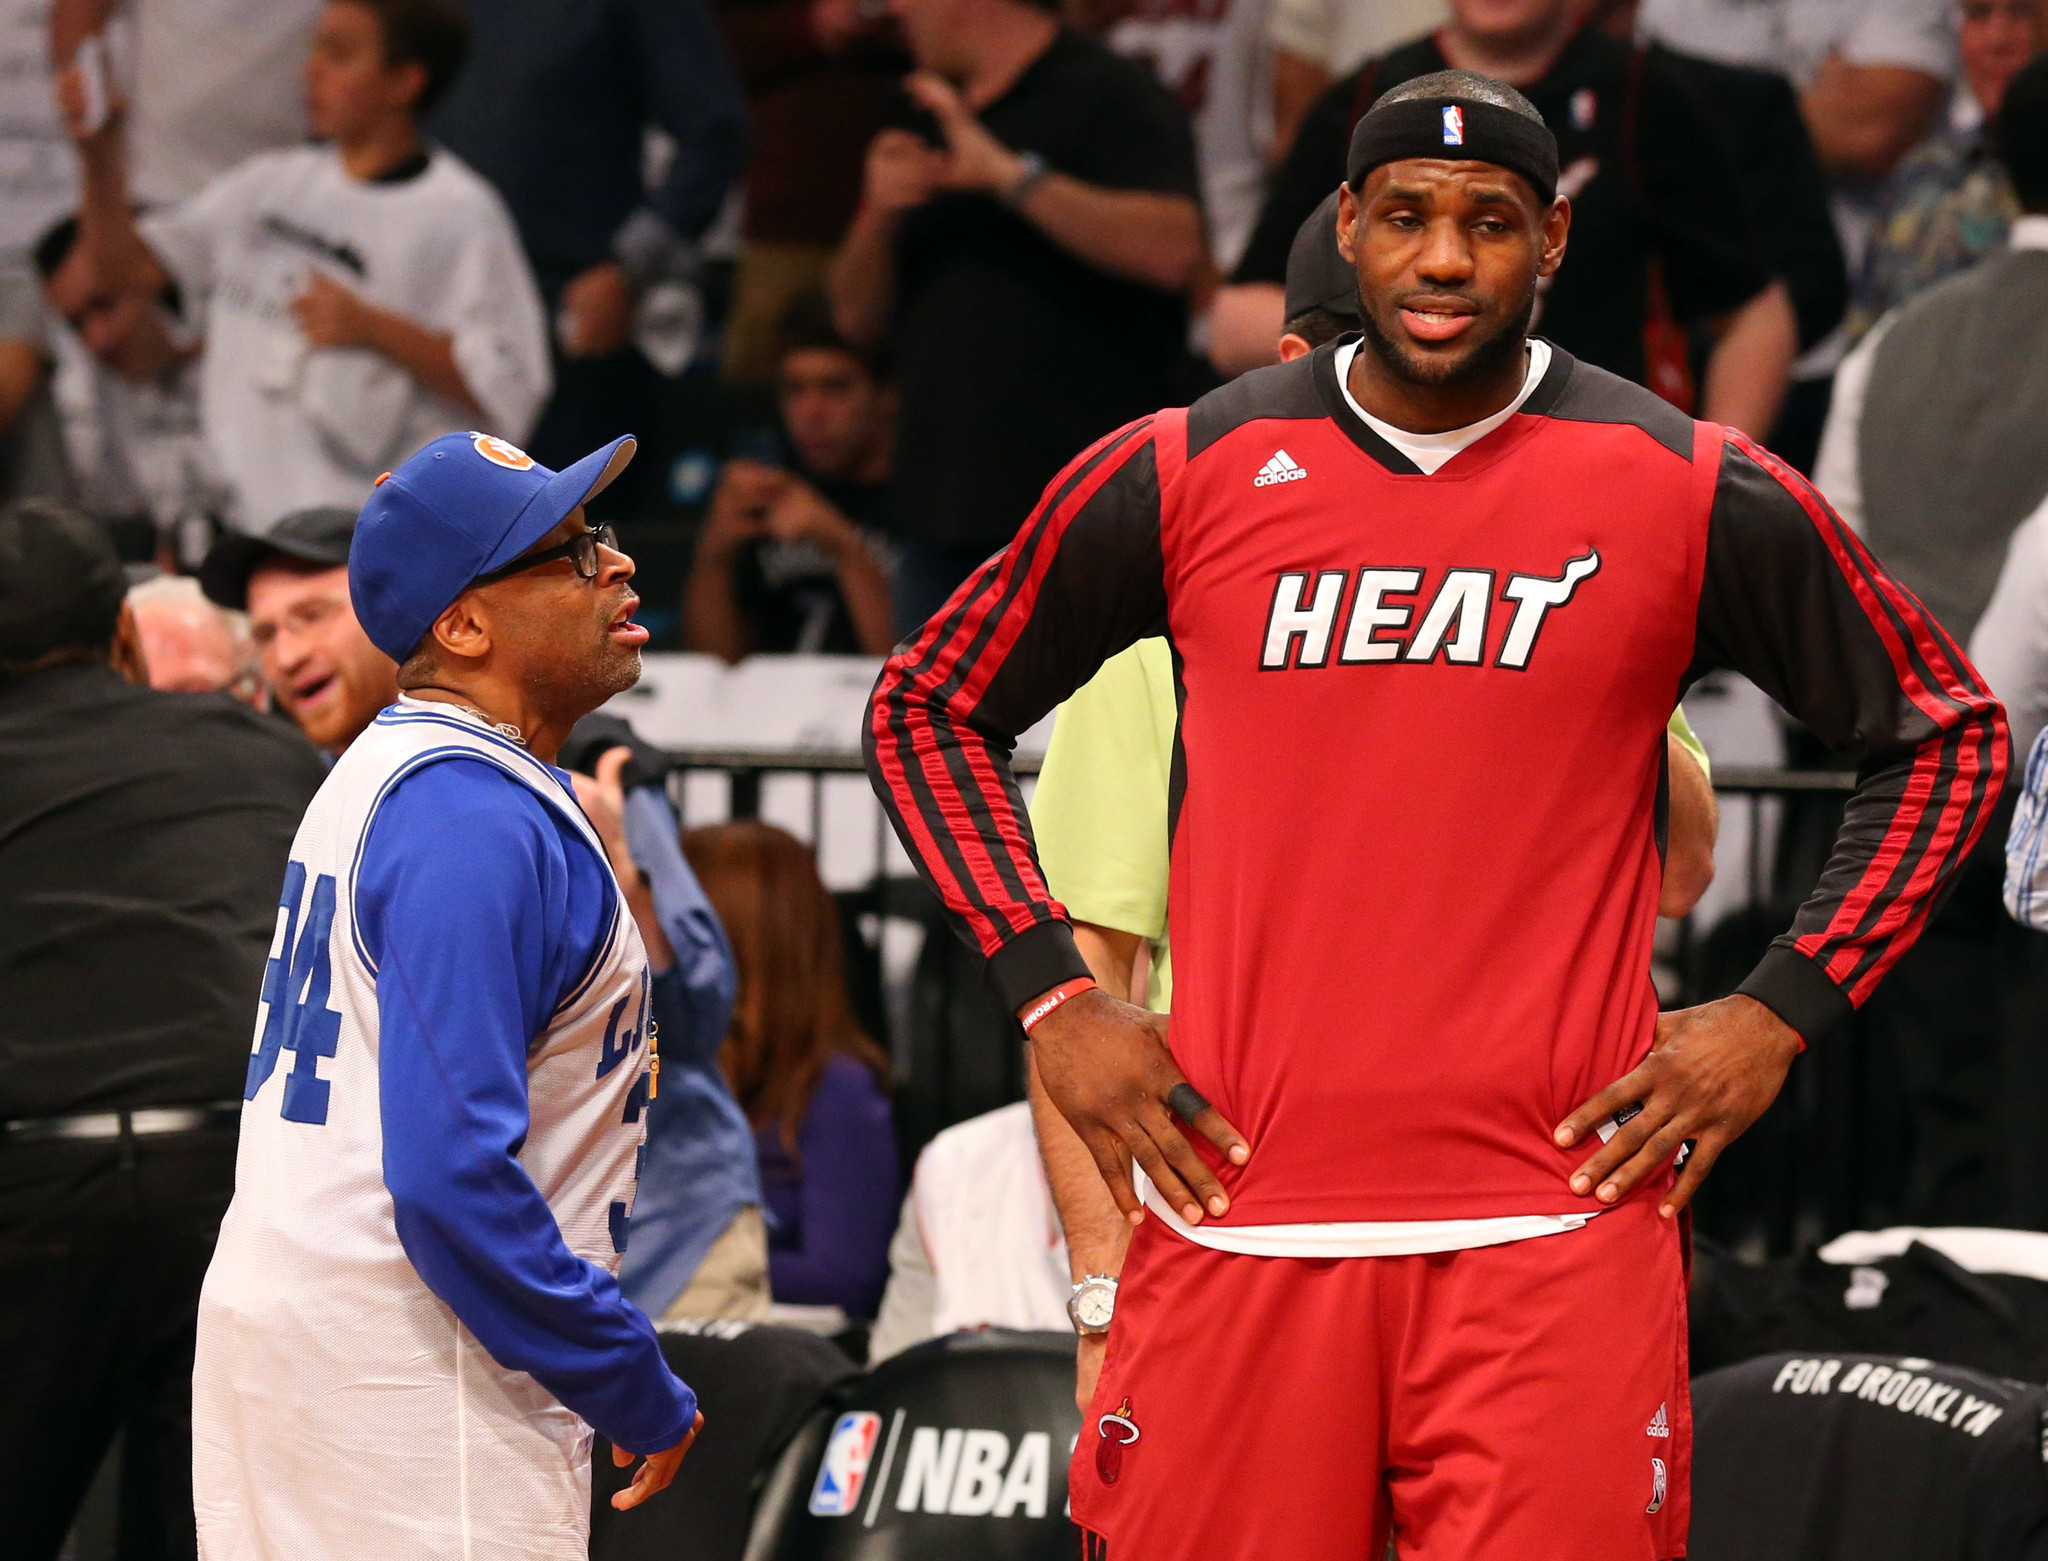 Celebs spotted at Miami Heat games - Spike Lee